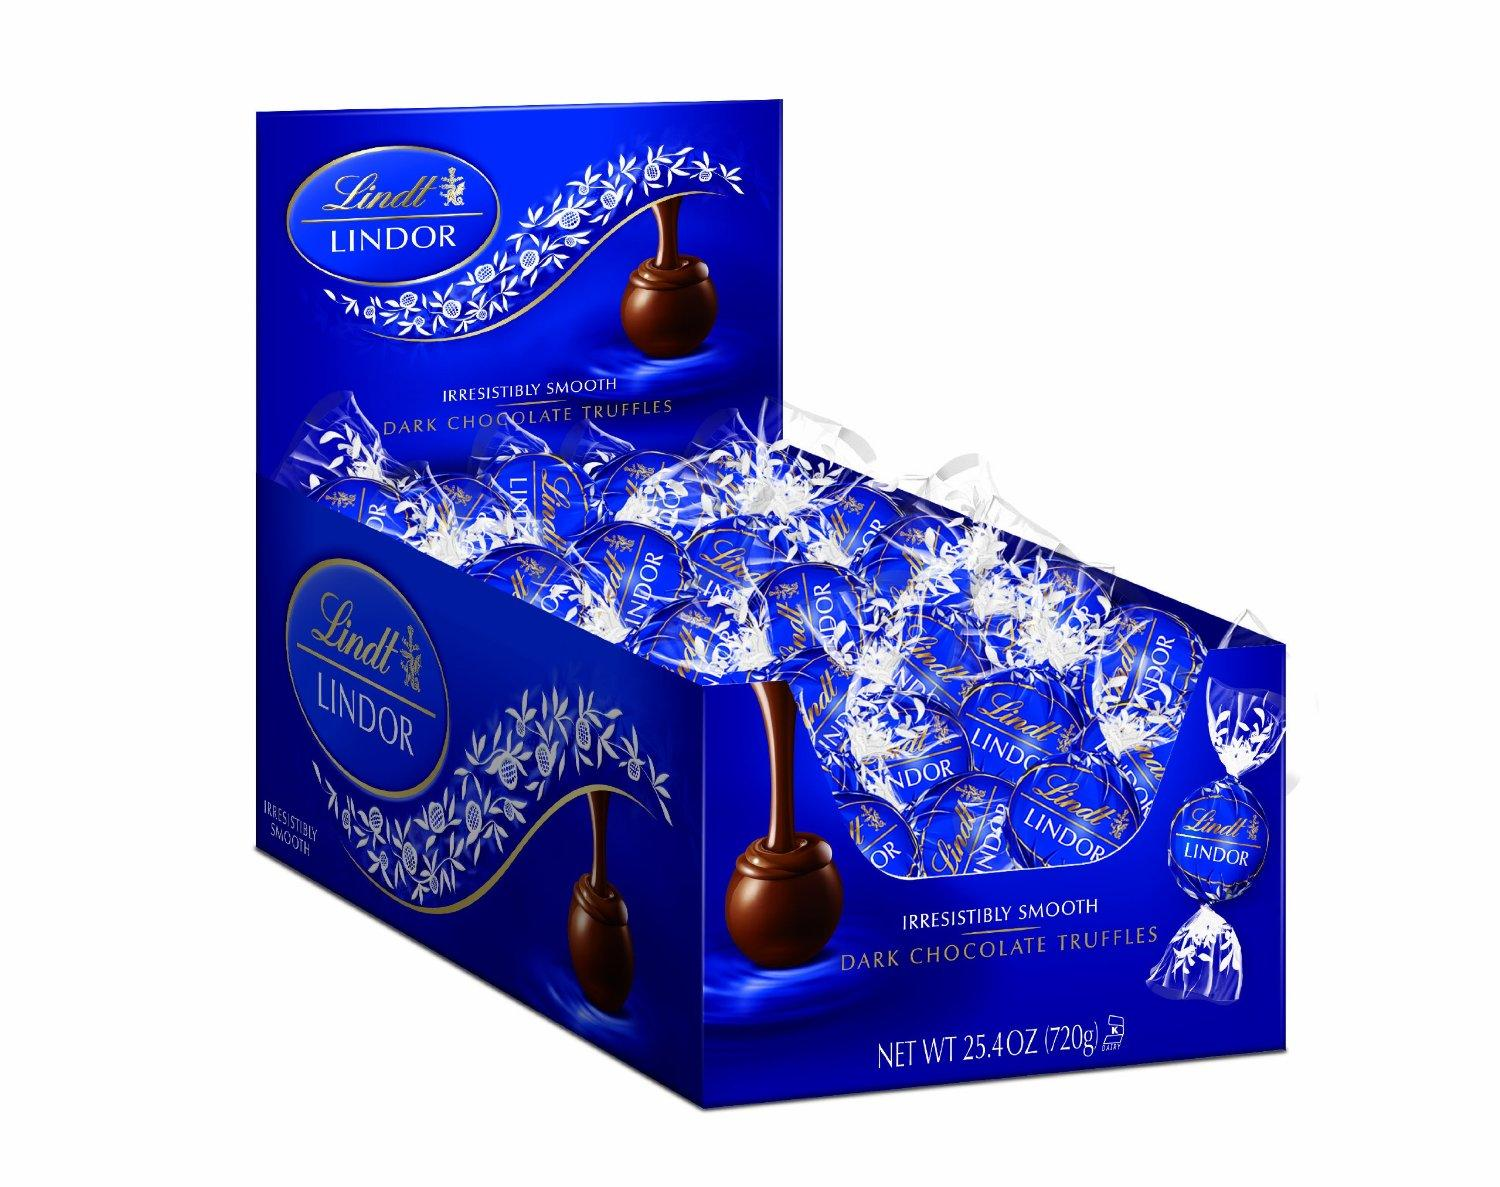 Lindt LINDOR Dark Chocolate Truffles, 120 Count Box